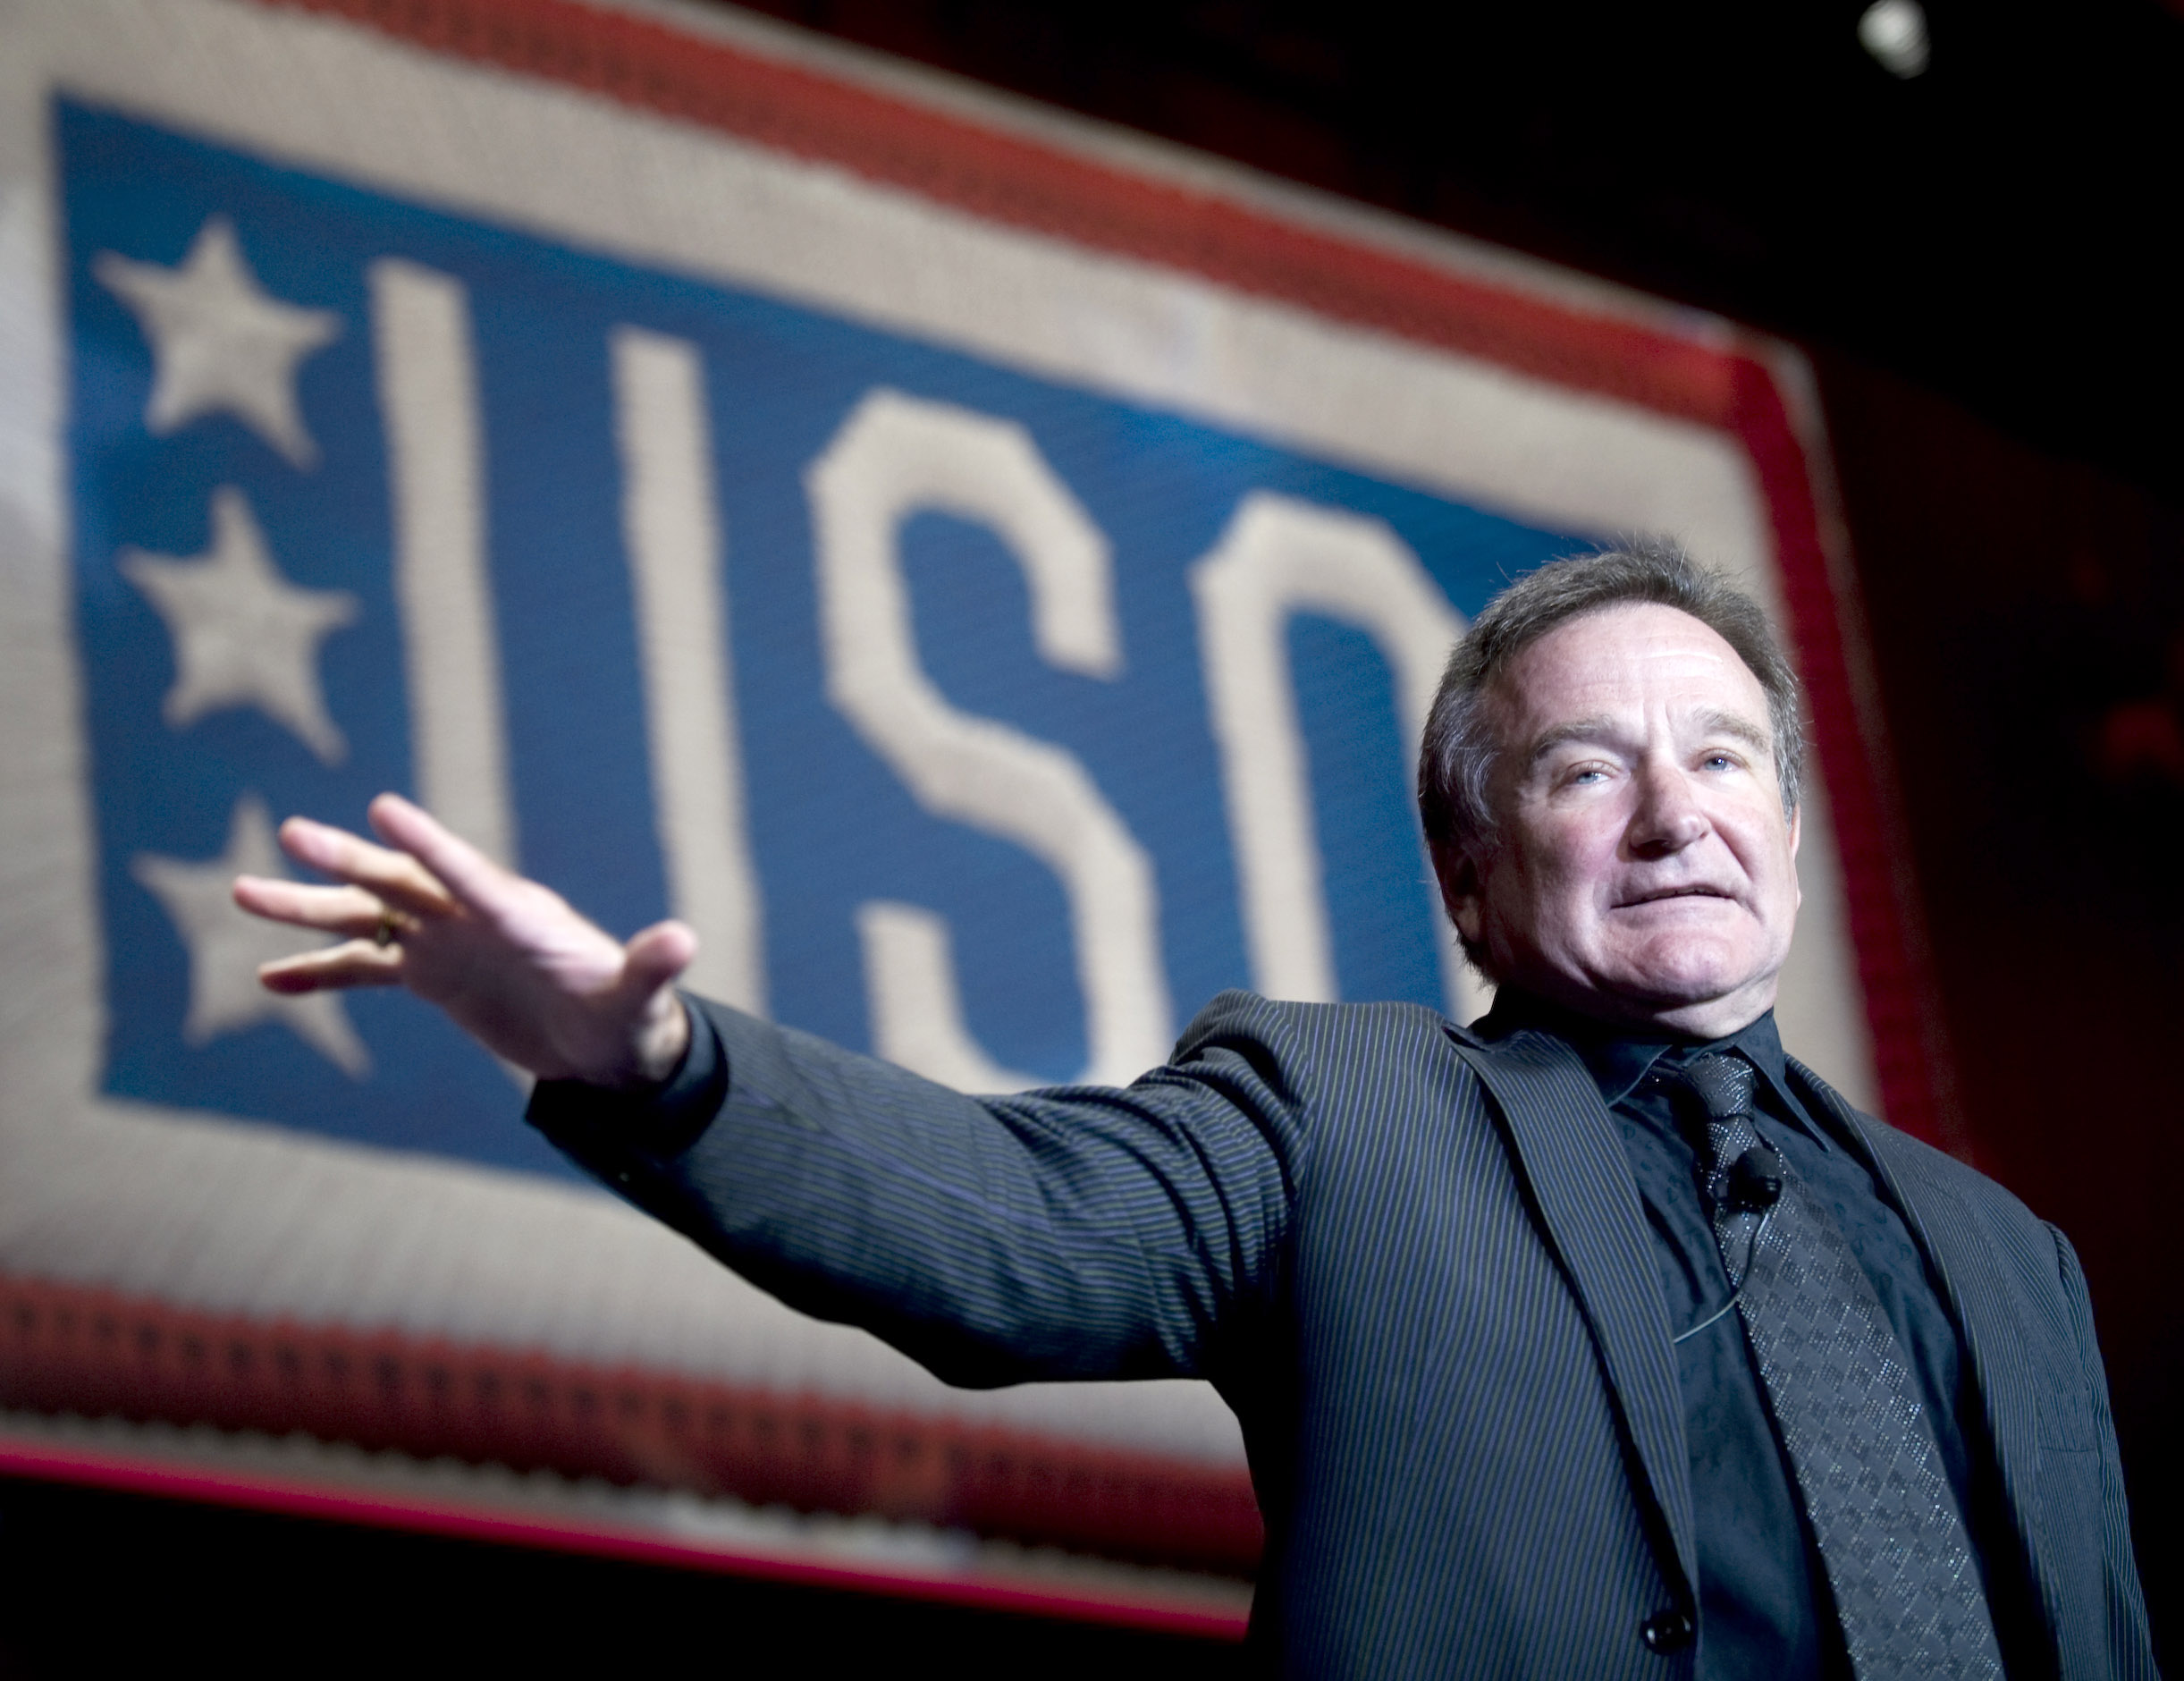 081001-N-0696M-339 Comedian and actor Robin Williams performs at the 2008 USO World Gala, Marriott Wardham Park Hotel, Washington, D.C., Oct. 1, 2008. (DoD photo by Mass Communication Specialist 1st Class Chad J. McNeeley/Released)